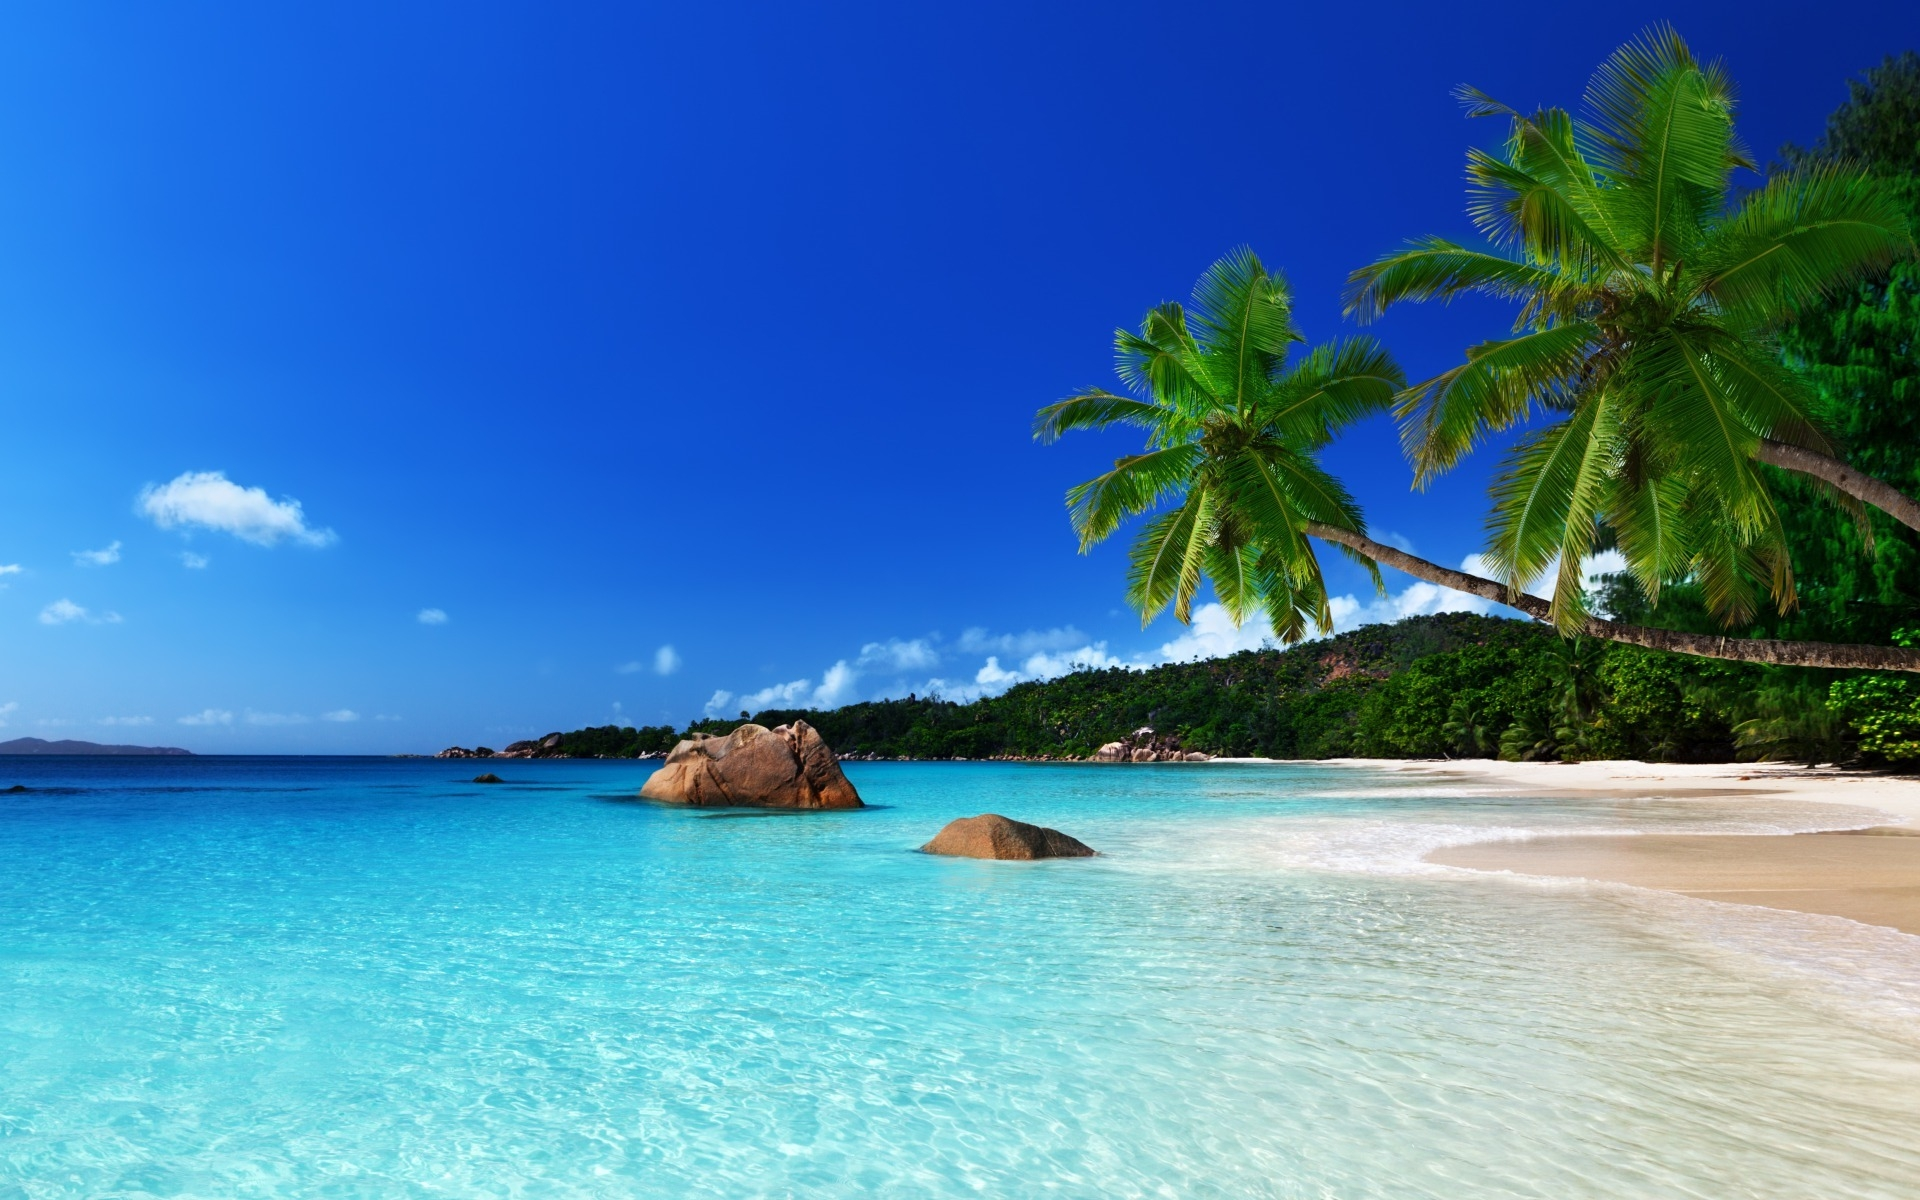 tropical wallpaper background image #120